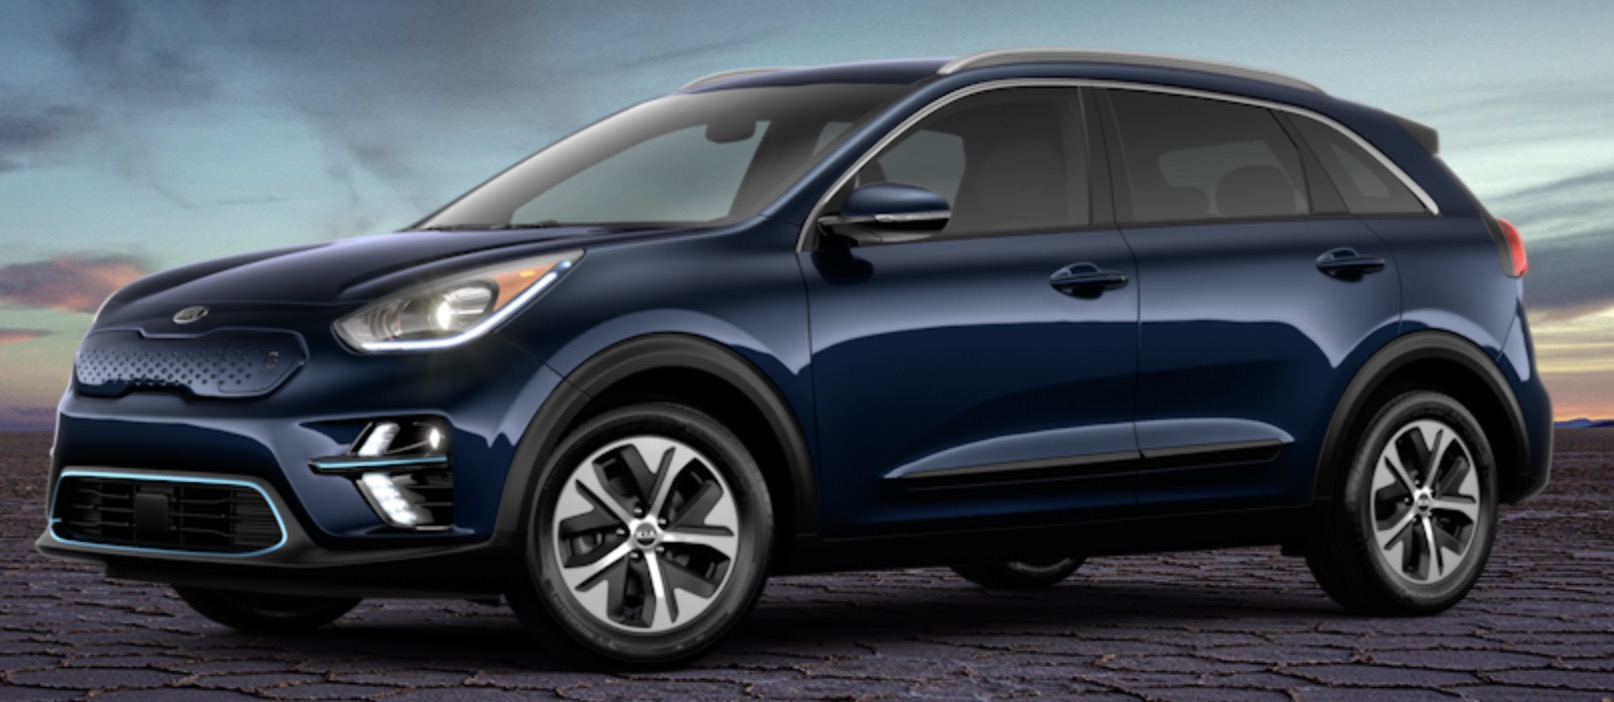 Side view of 2019 Kia Niro electric car in gravity blue color against a sky at dusk.